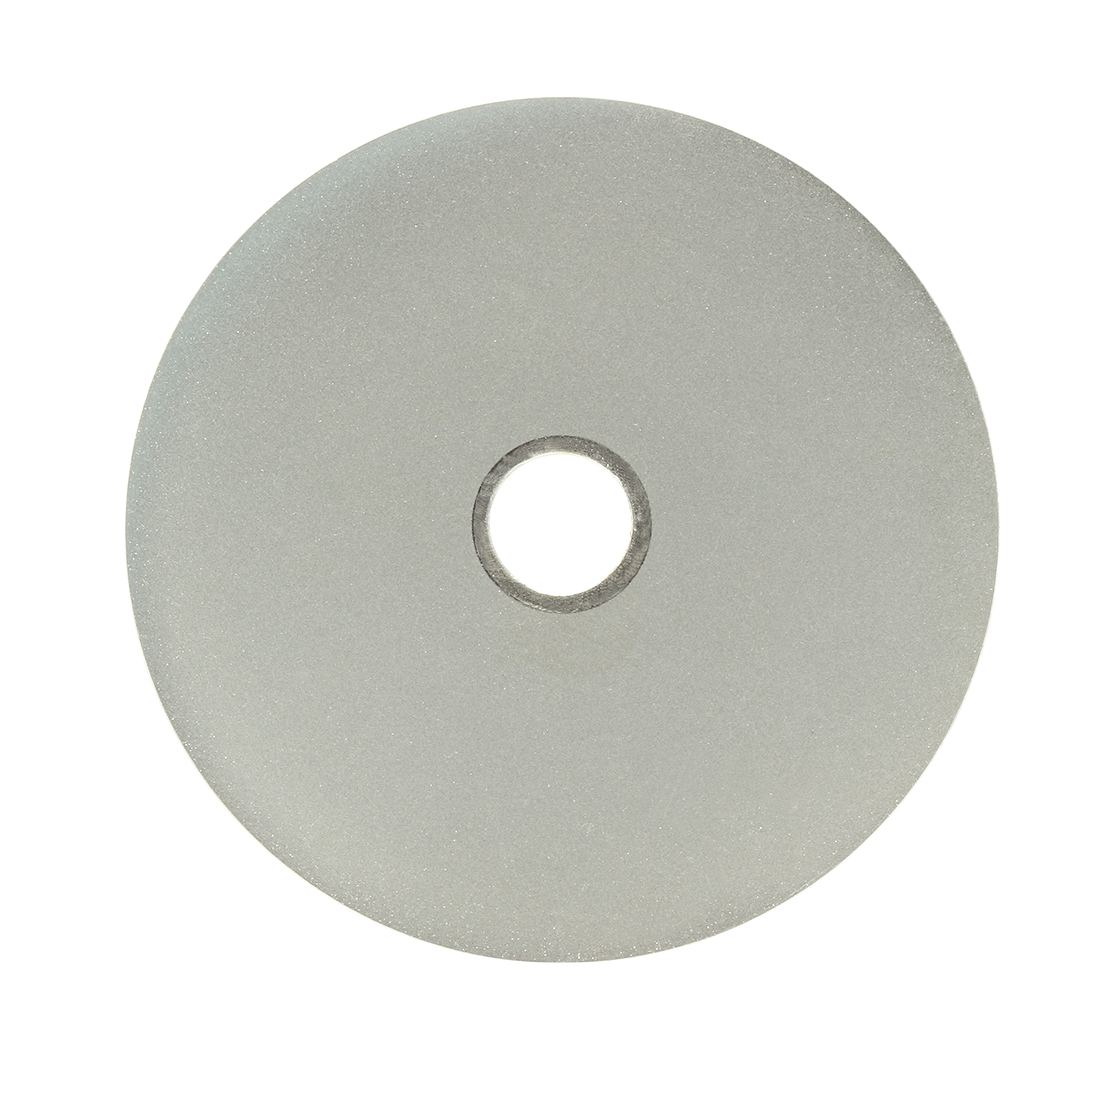 100mm 4-inch Grit 3000 Diamond Coated Flat Lap Disk Wheel Grinding Sanding Disc